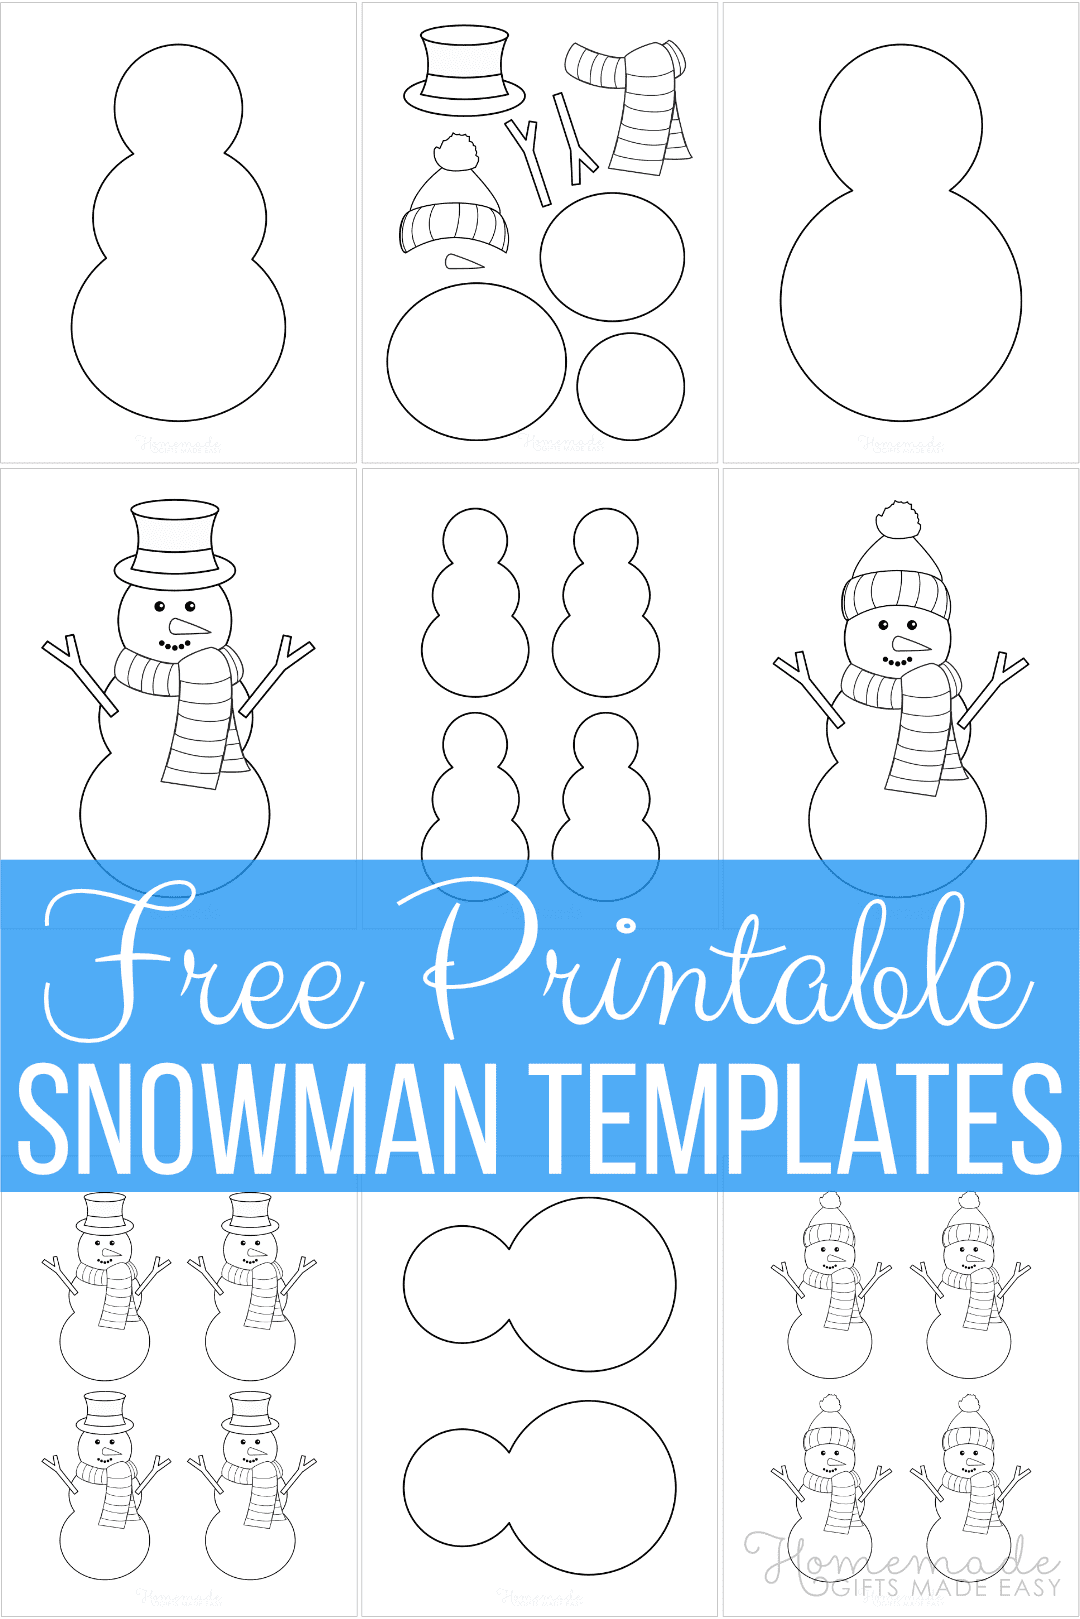 Free Printable Snowman Templates For Crafts In 2021 Snowman Coloring Pages Printable Snowman Snowman Outline